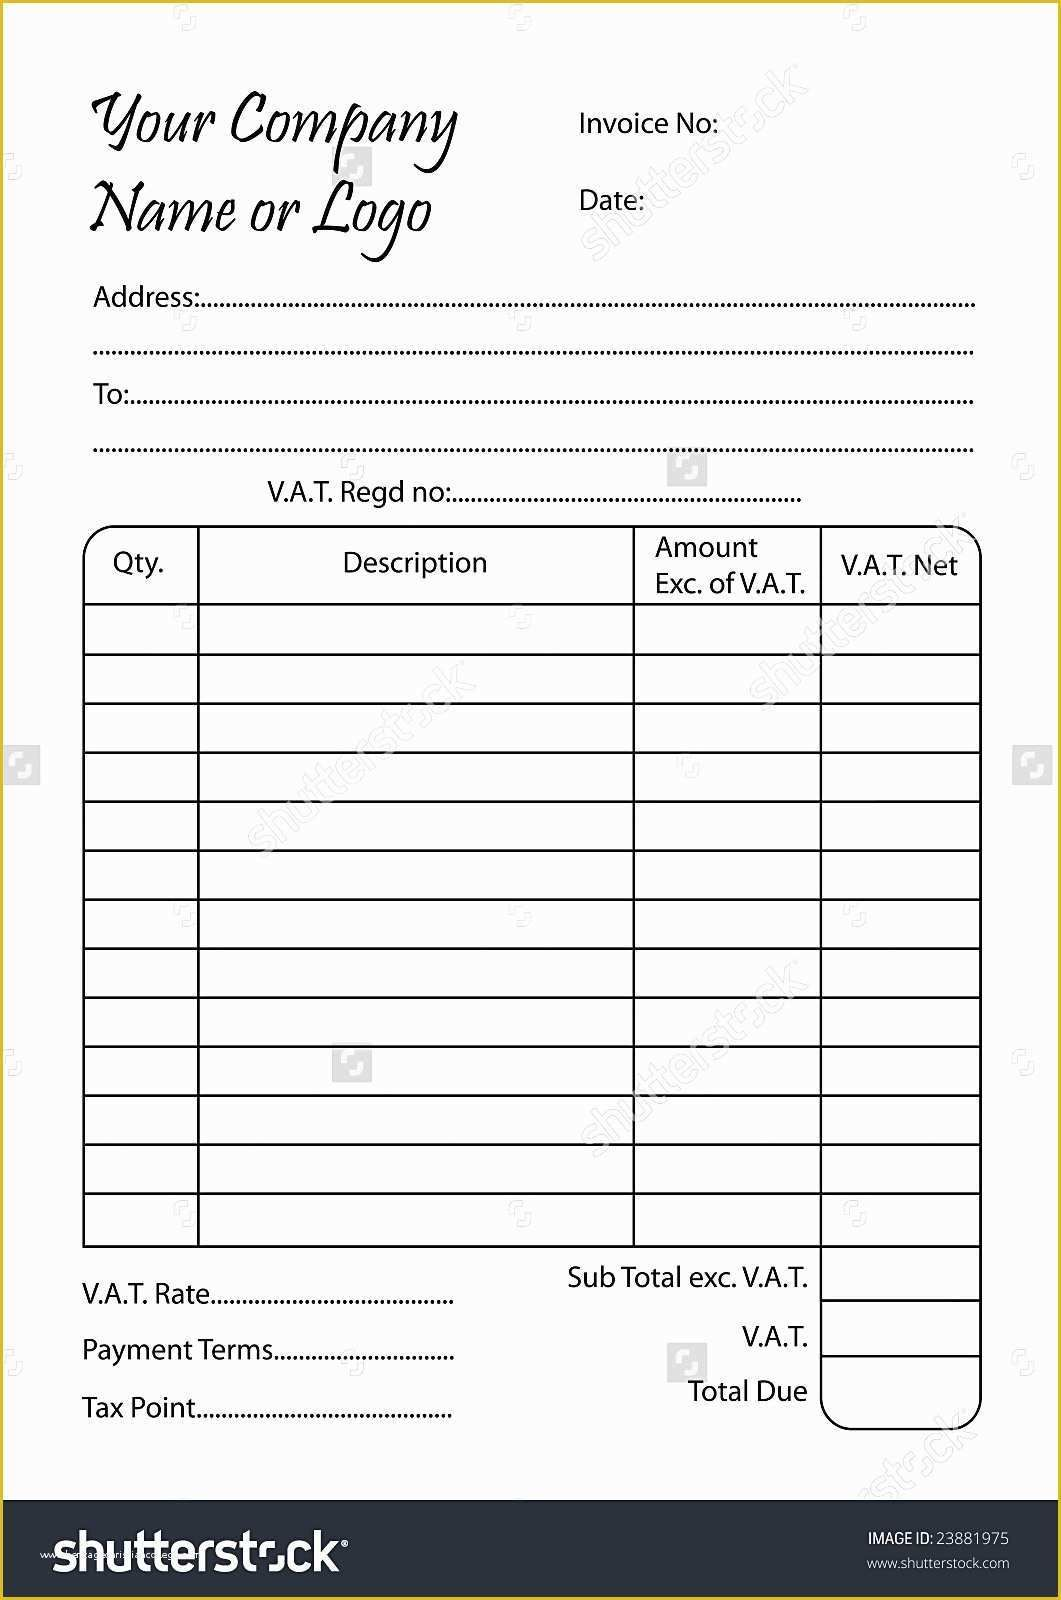 Free Online Invoice Template Of 55 Free Invoice Templates Heritagechristiancollege Invoice Template Purchase Order Template Book Template